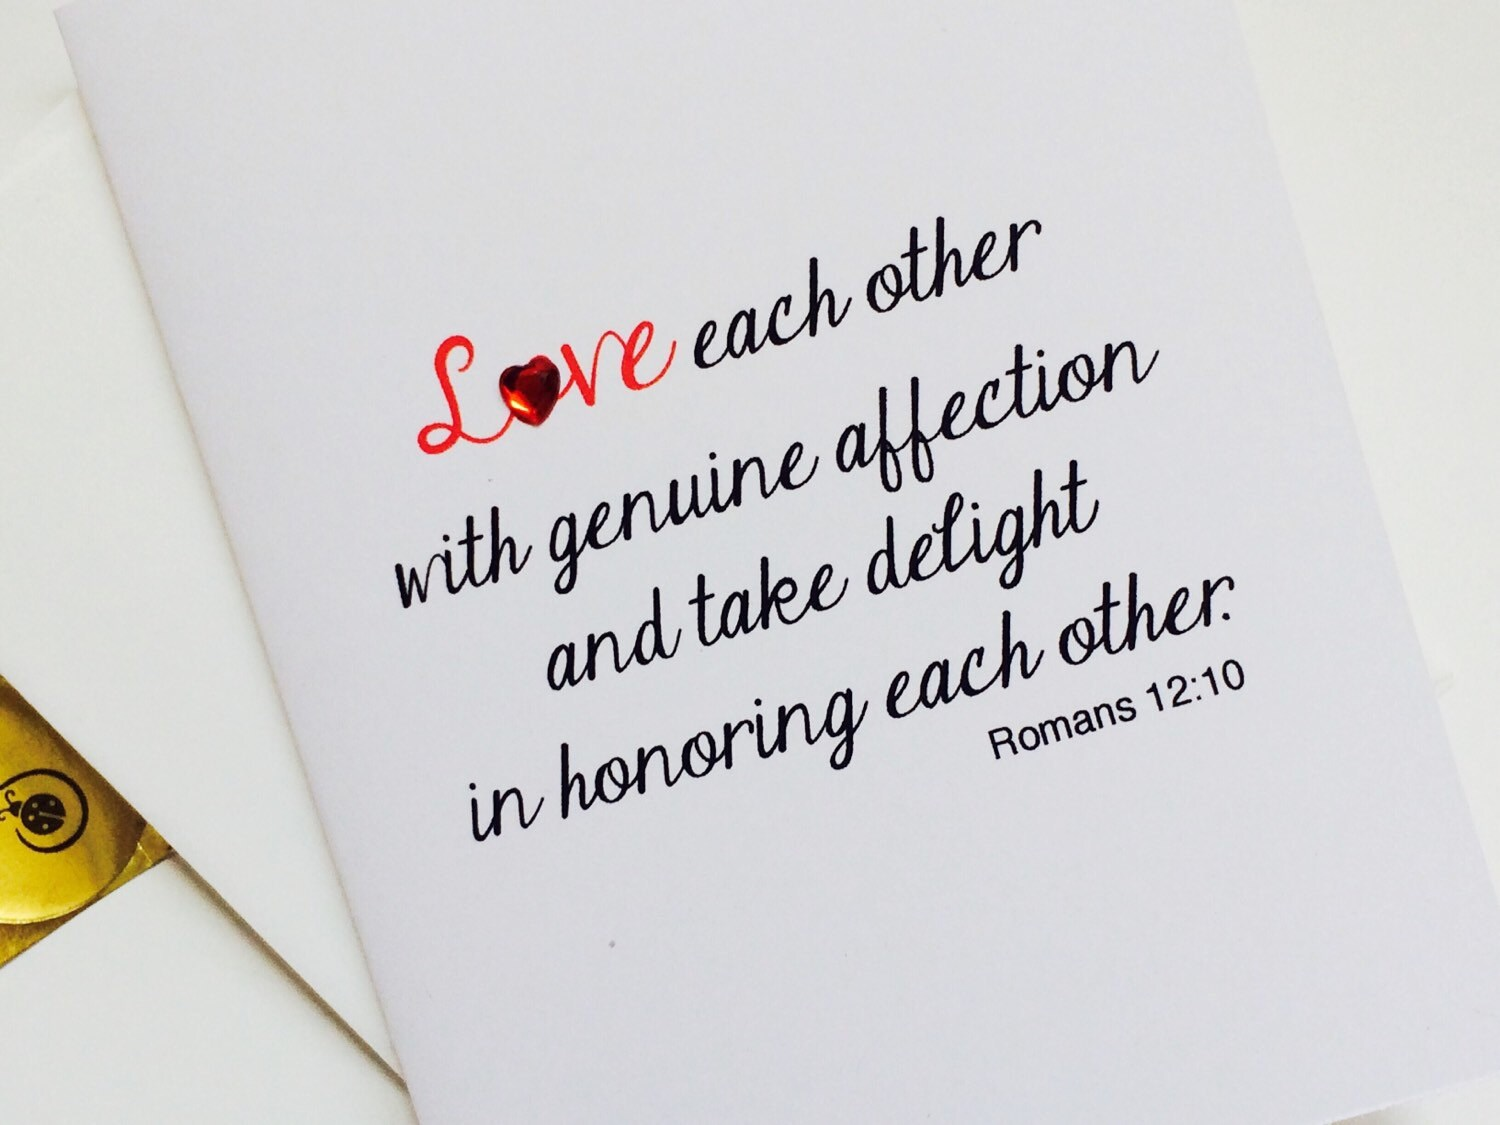 Christian anniversary card romans 12 10 love eachother with